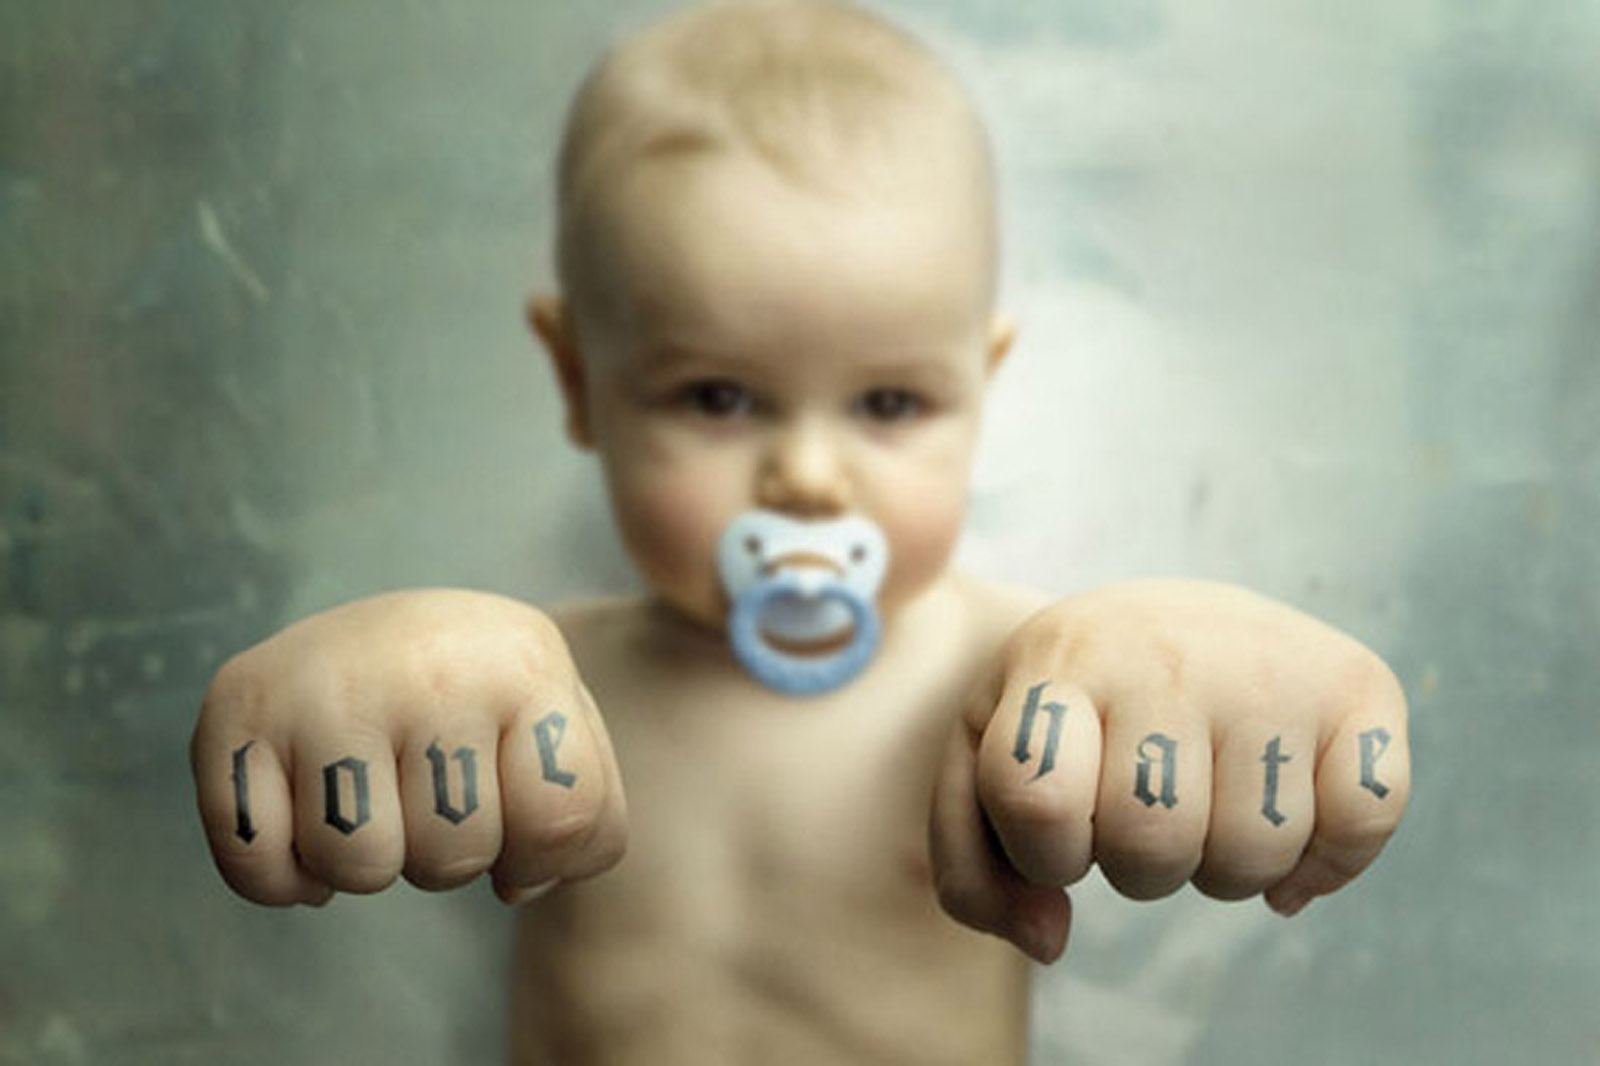 http://4.bp.blogspot.com/_63vInxRS3yQ/TOBaKYrXyKI/AAAAAAAAAZc/-hCl8ncXujM/s1600/funny-baby-wallpapers-collection65.jpg